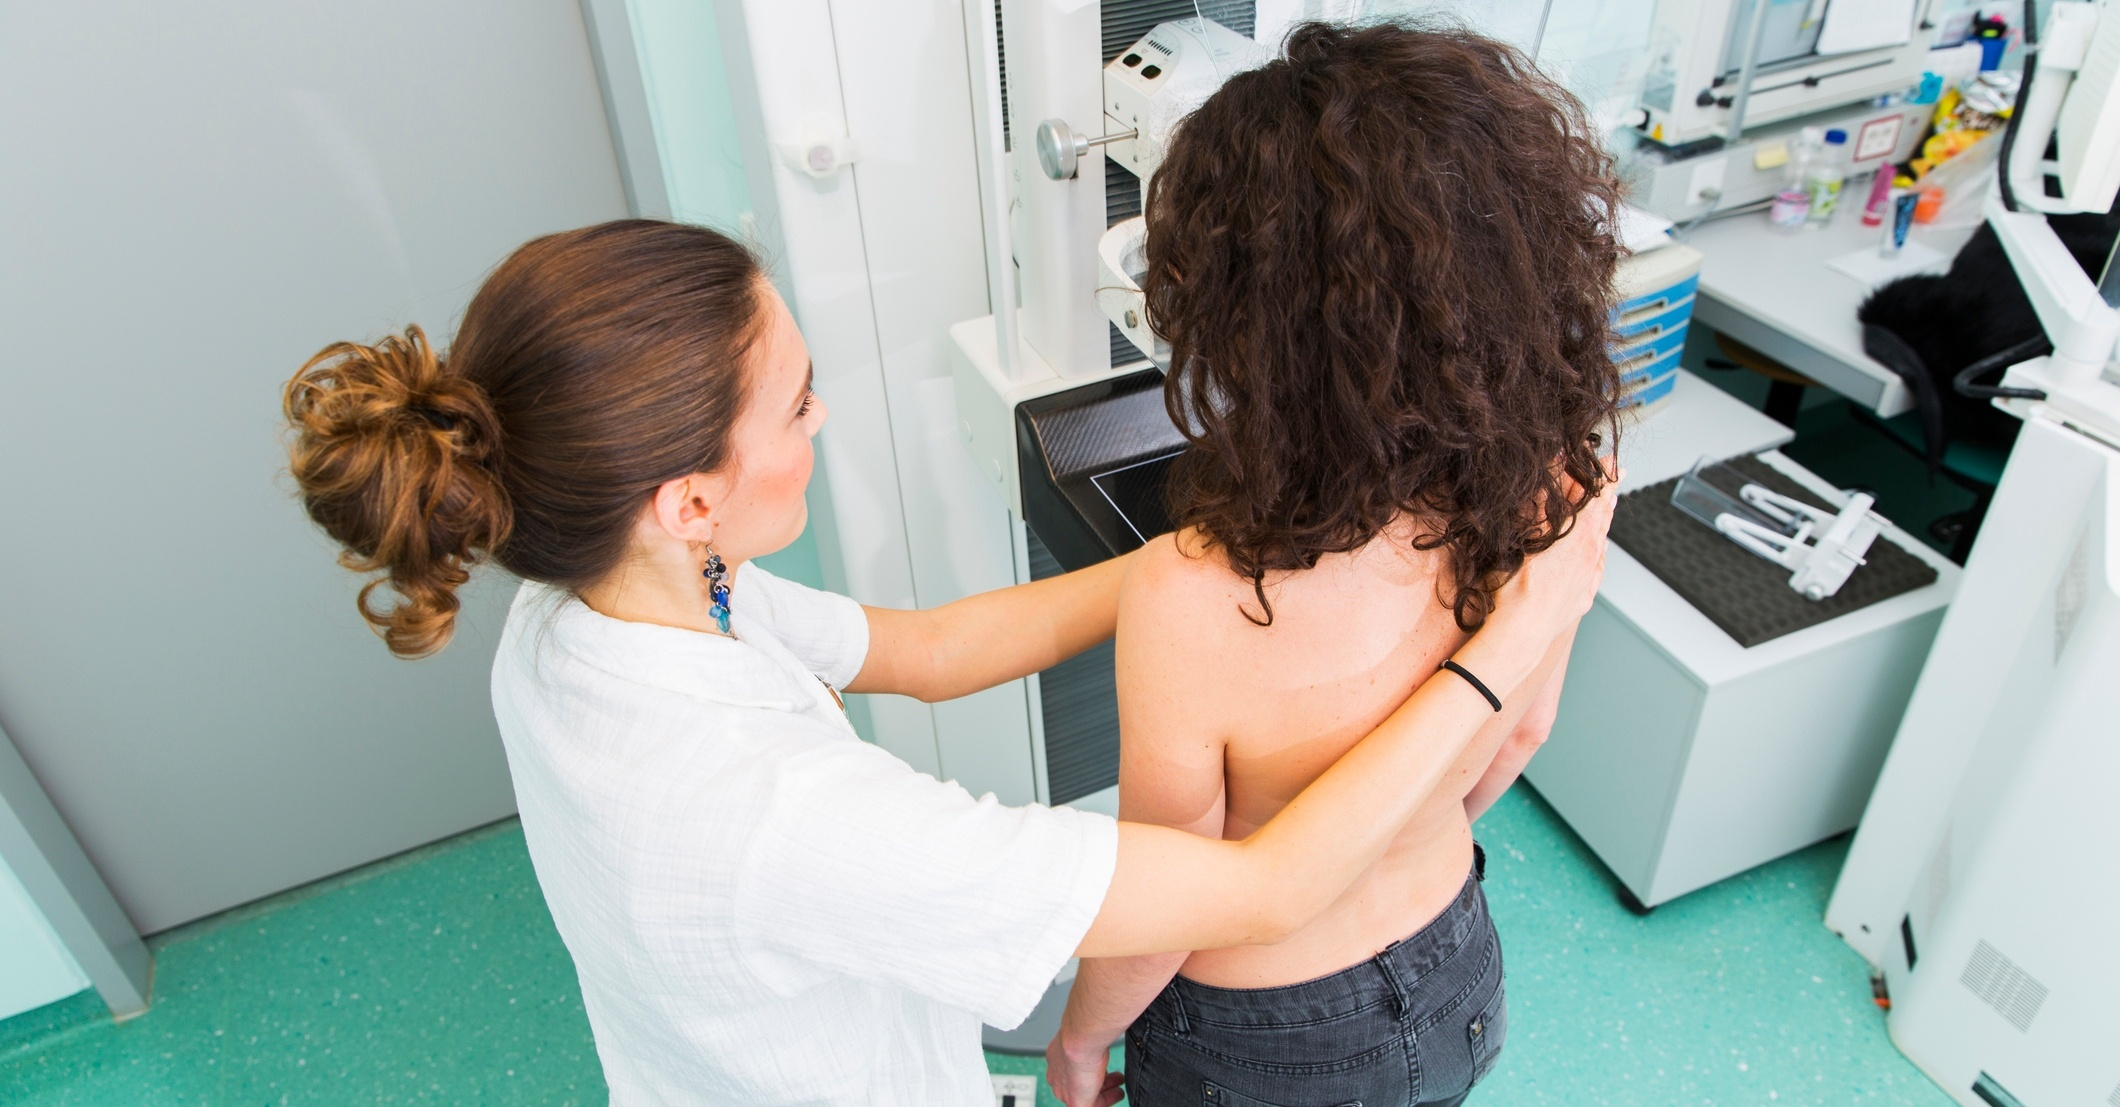 Almost half of women do not regularly check for breast cancer